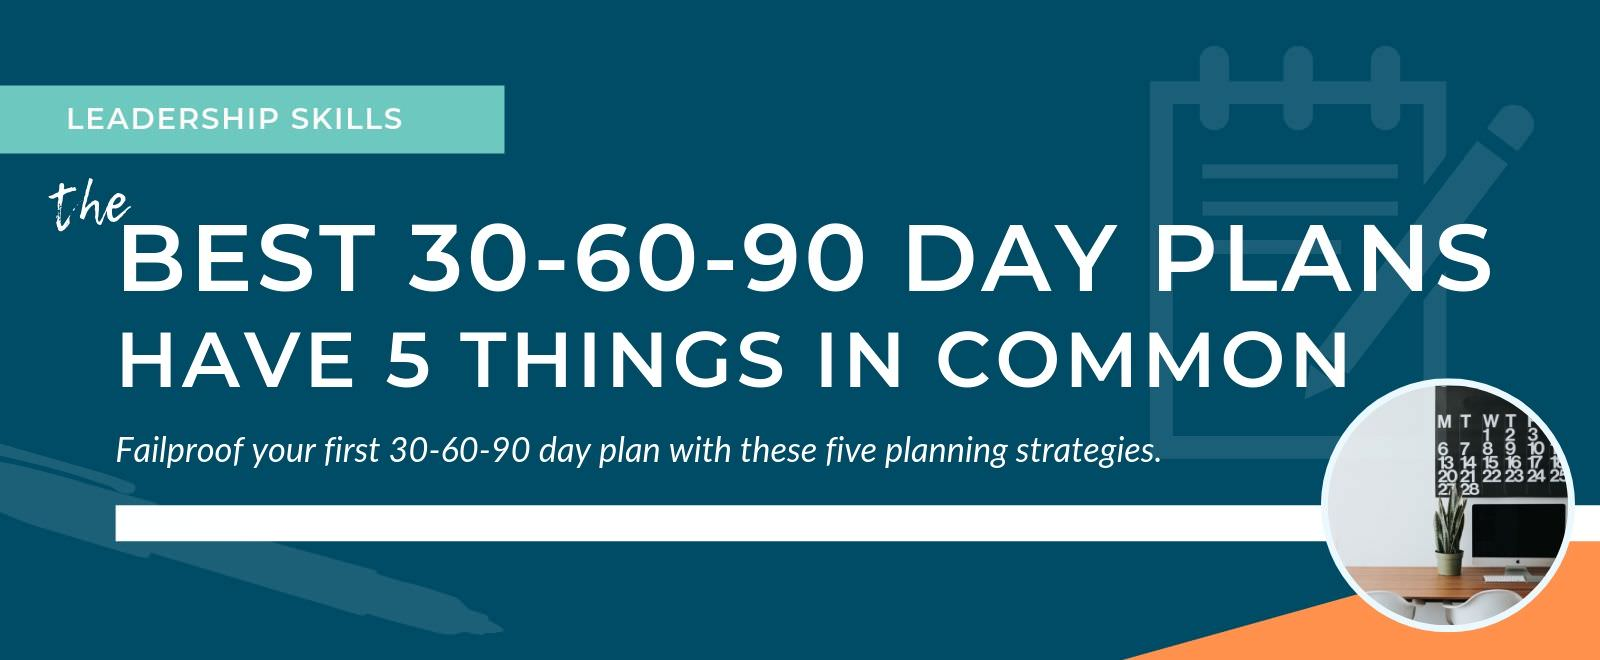 The Best 30 60 90 Day Plans Have These 5 Things Image